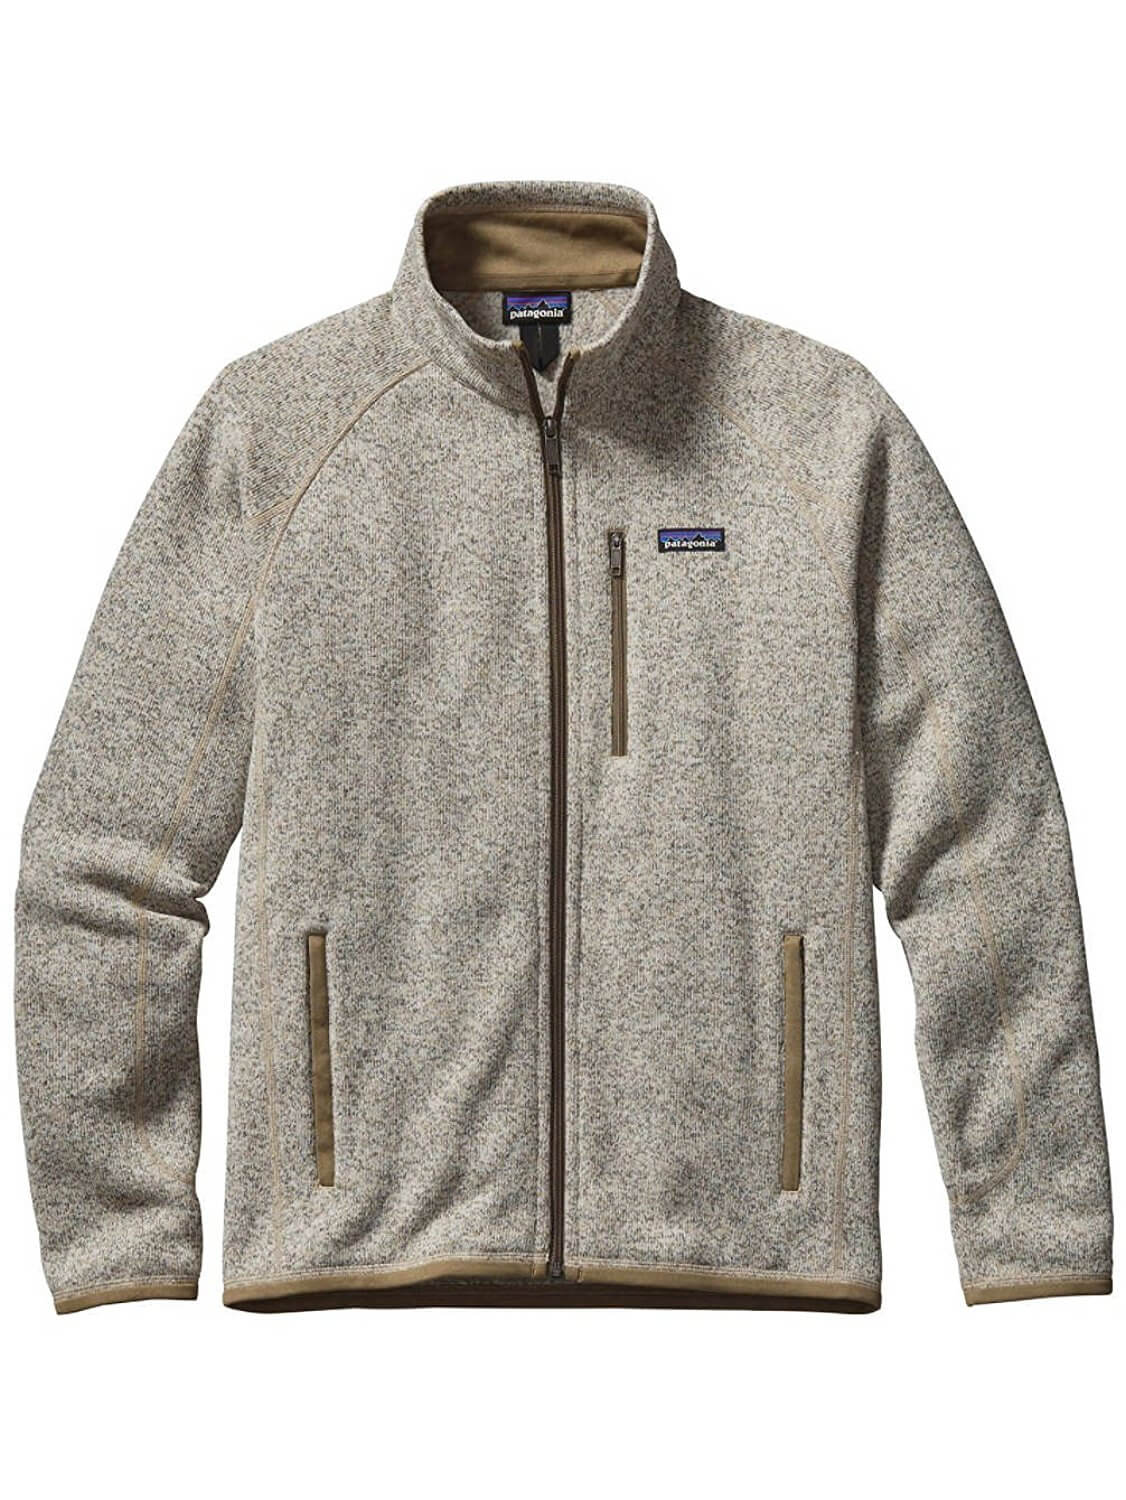 4. Patagonia Better Sweater